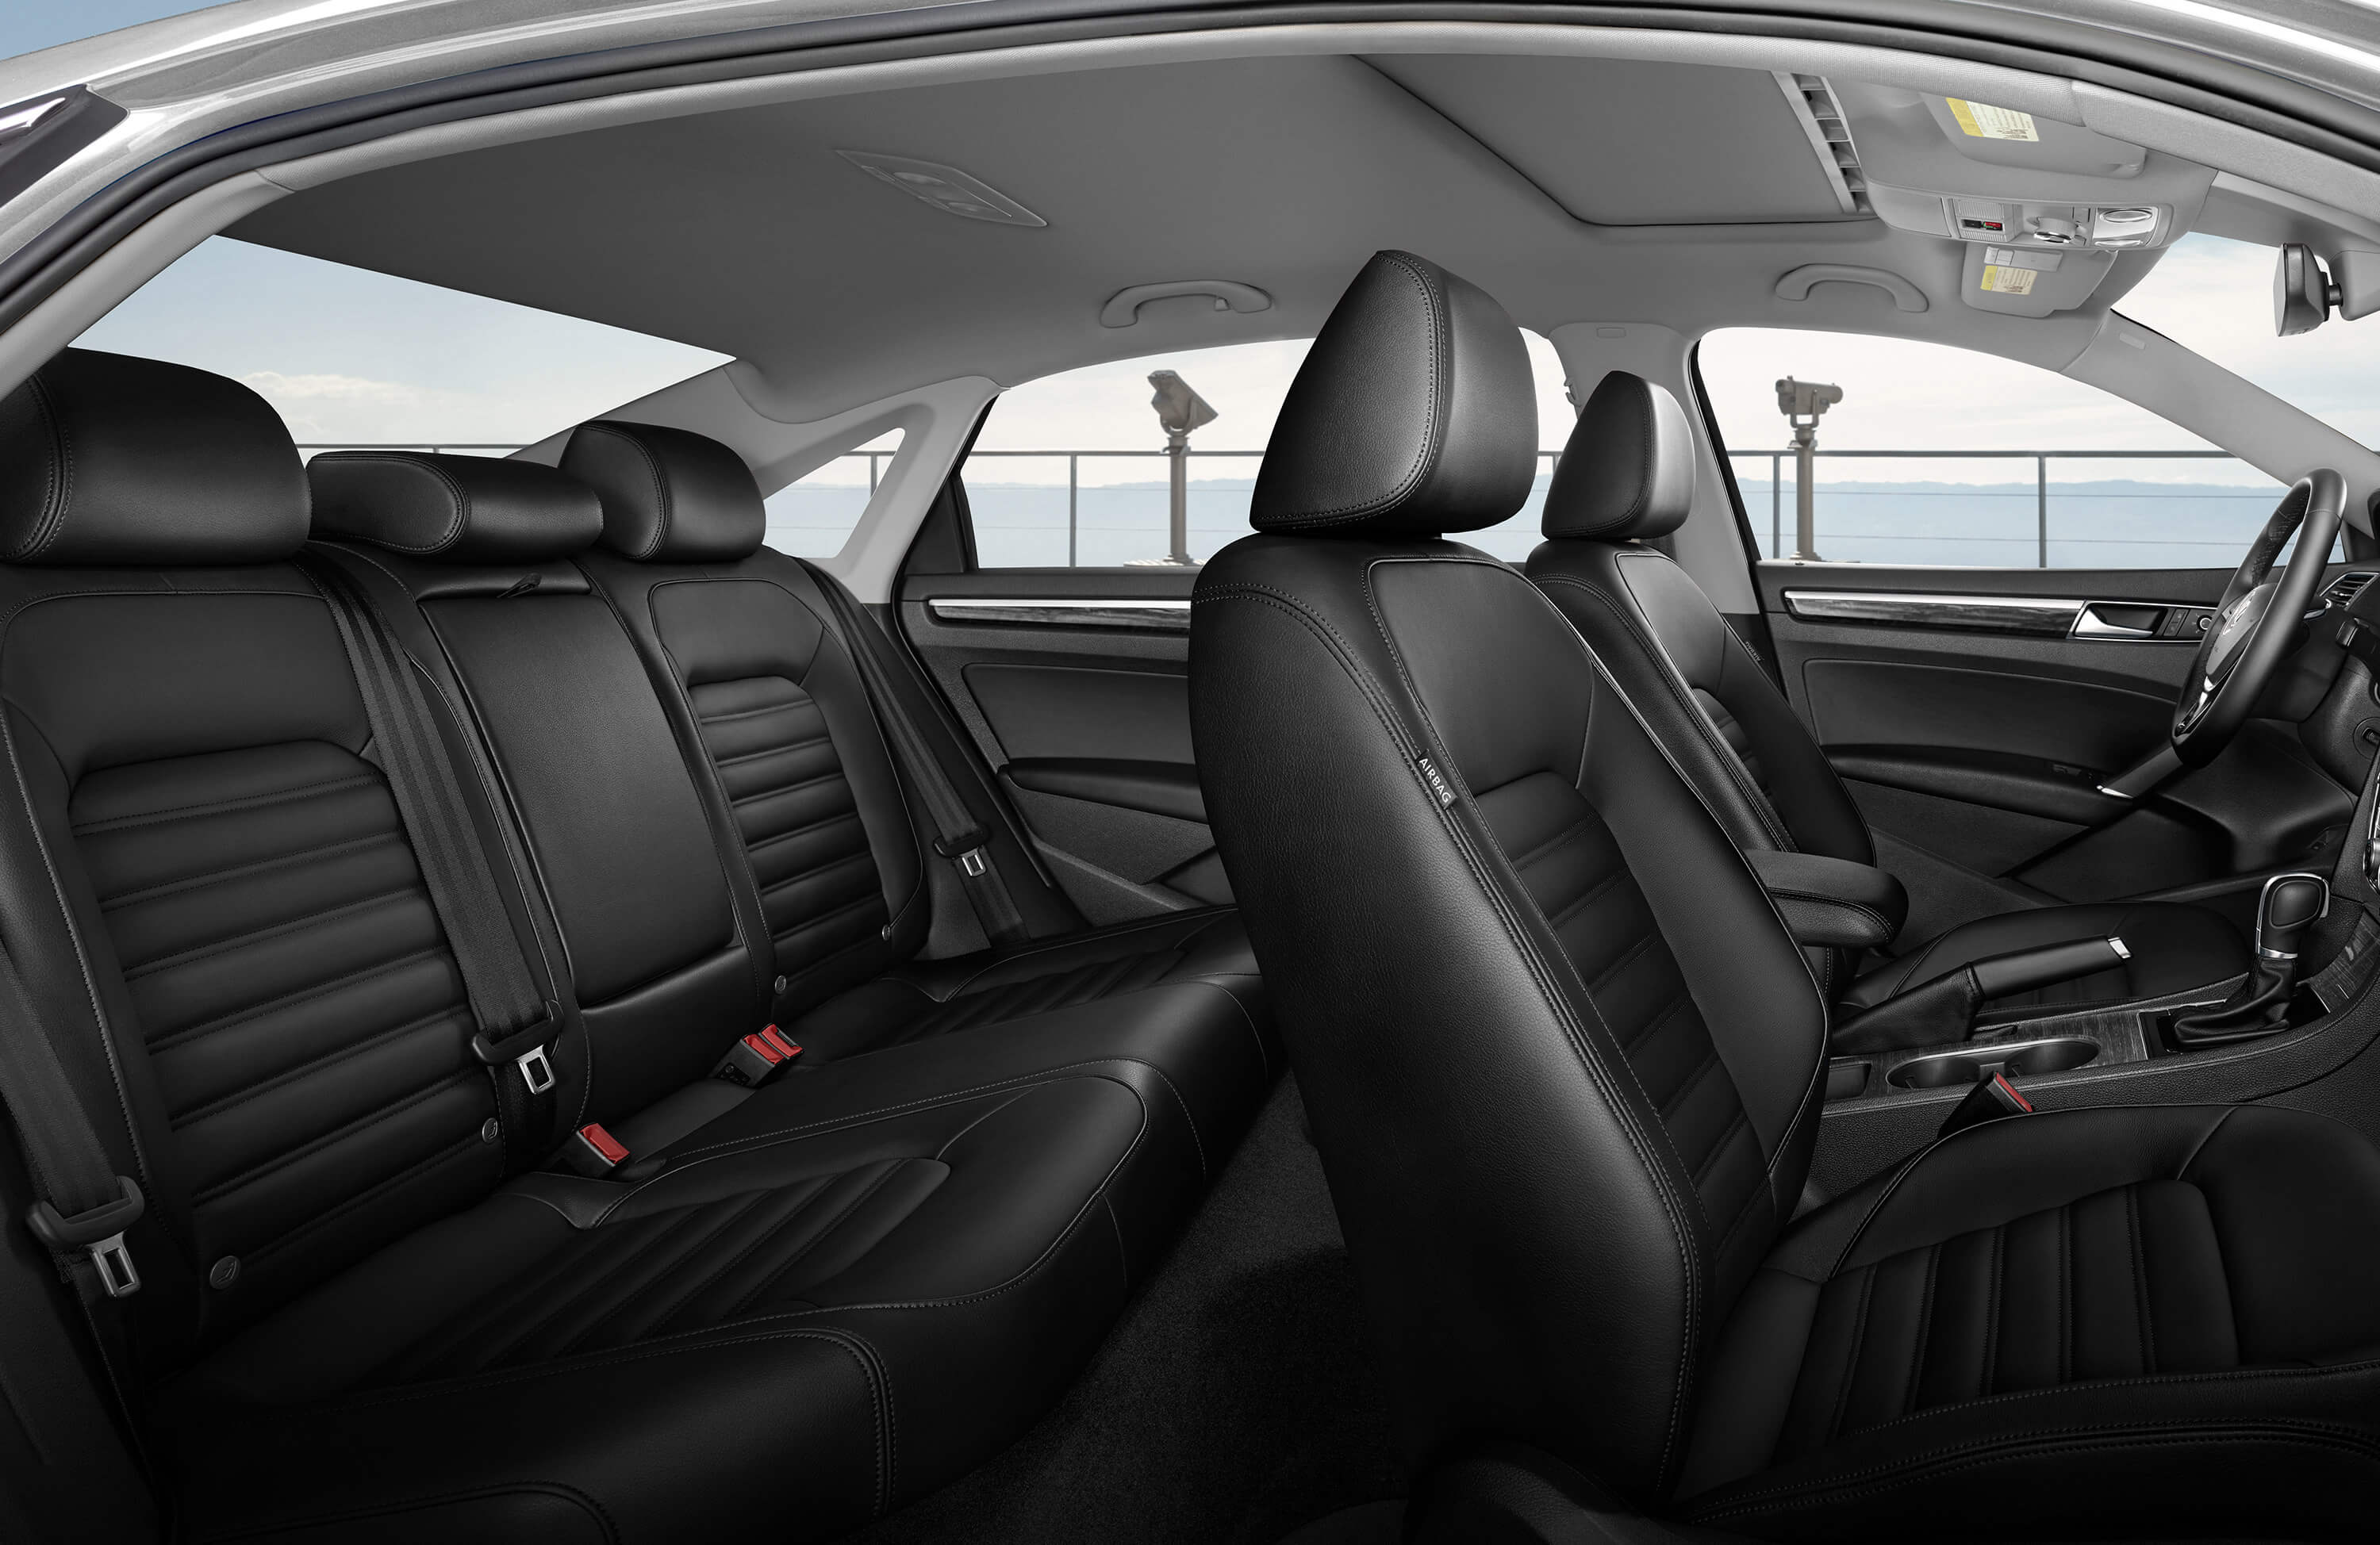 New VW Passat Interior image 1